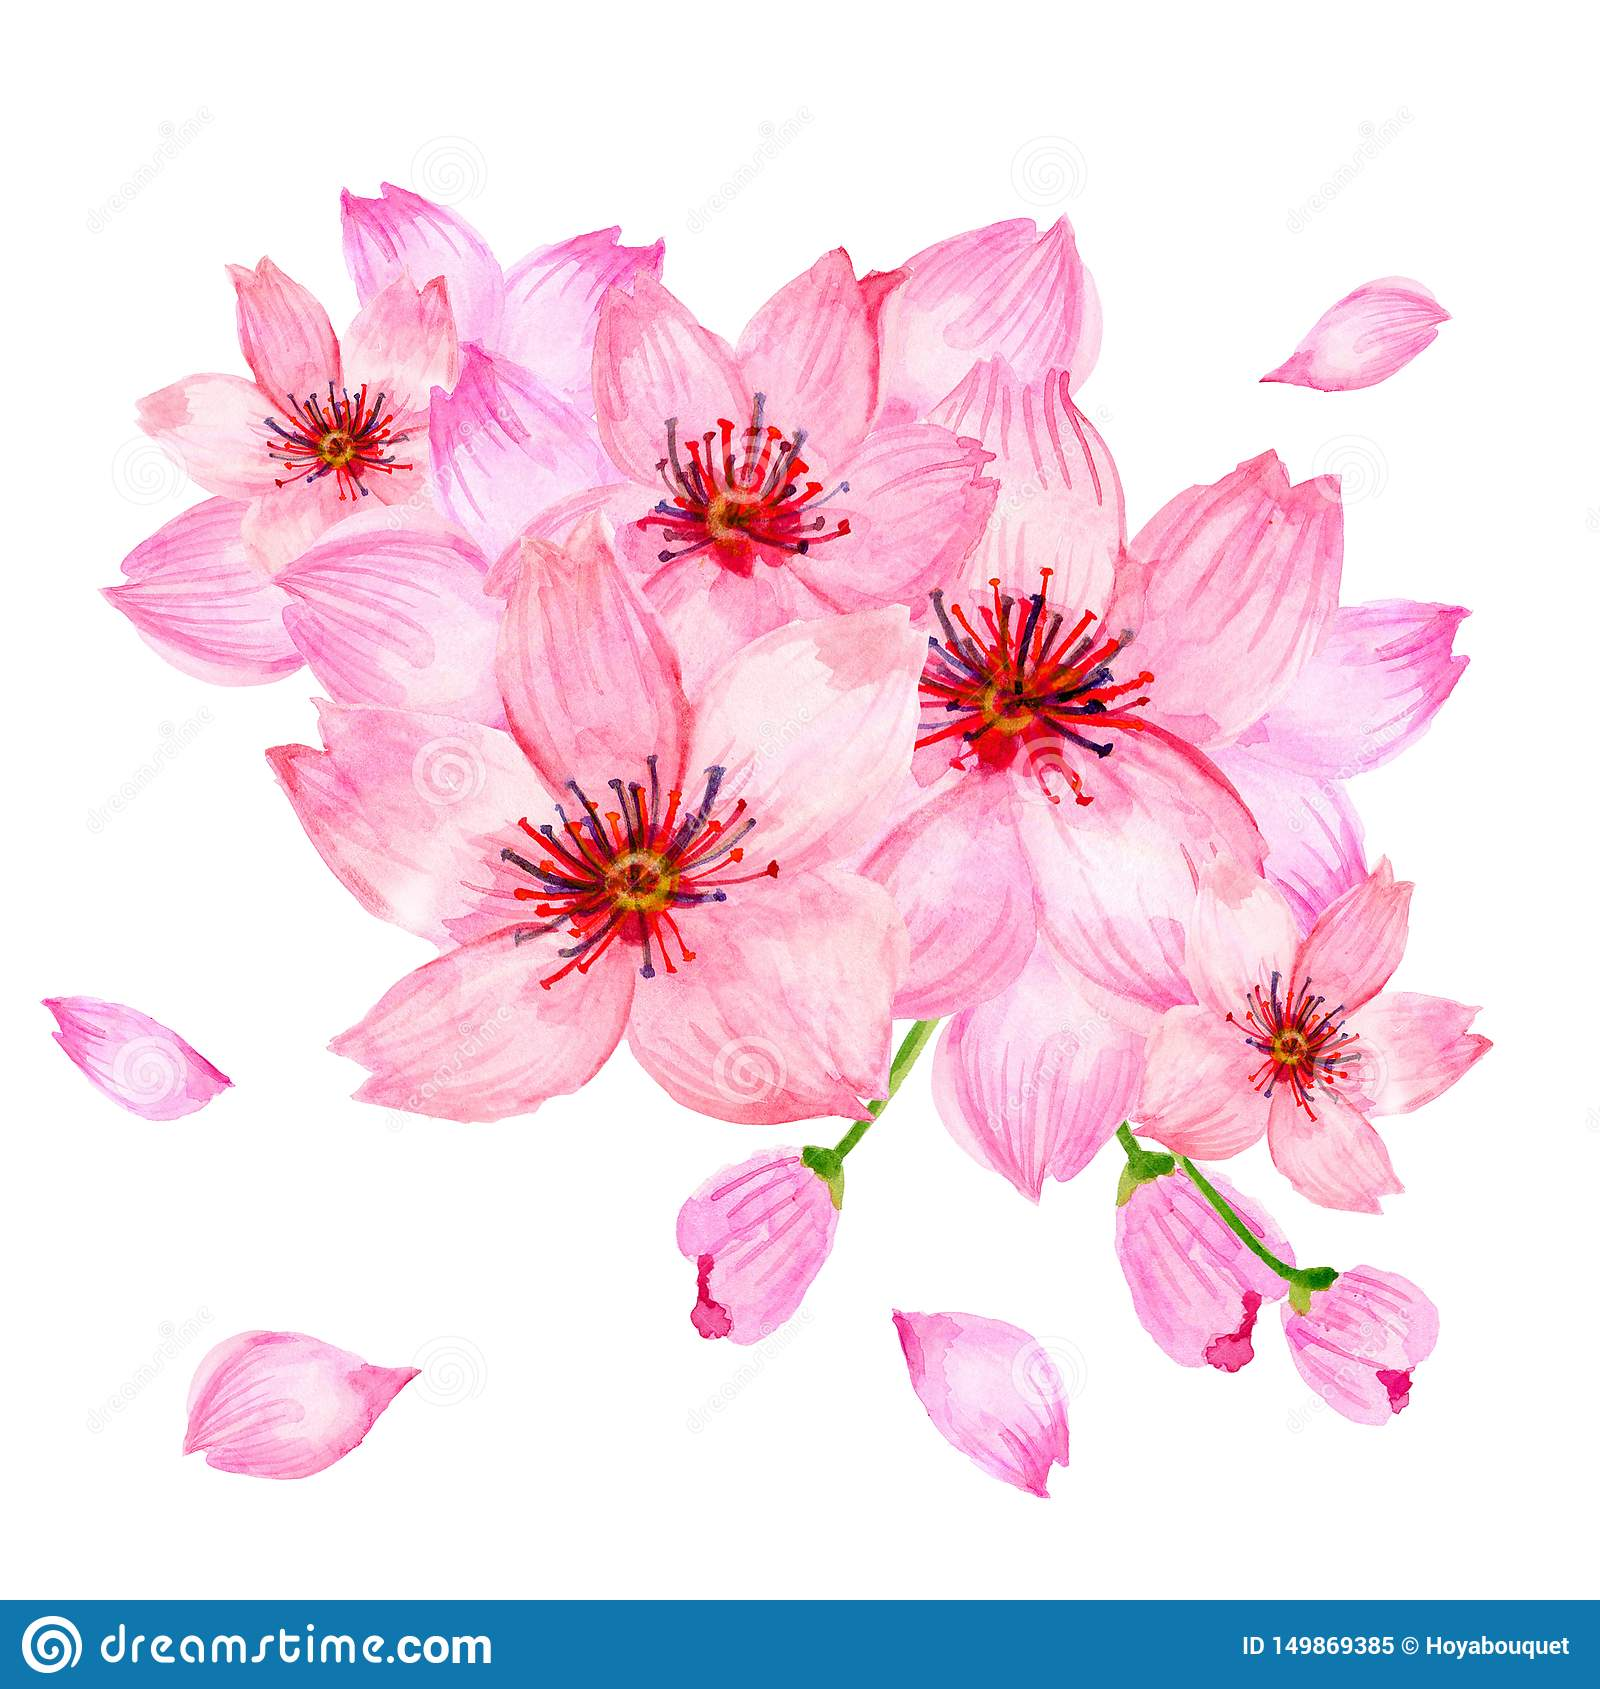 Watercolor Pink Cherry Blossom Sakura Japan Season Flower